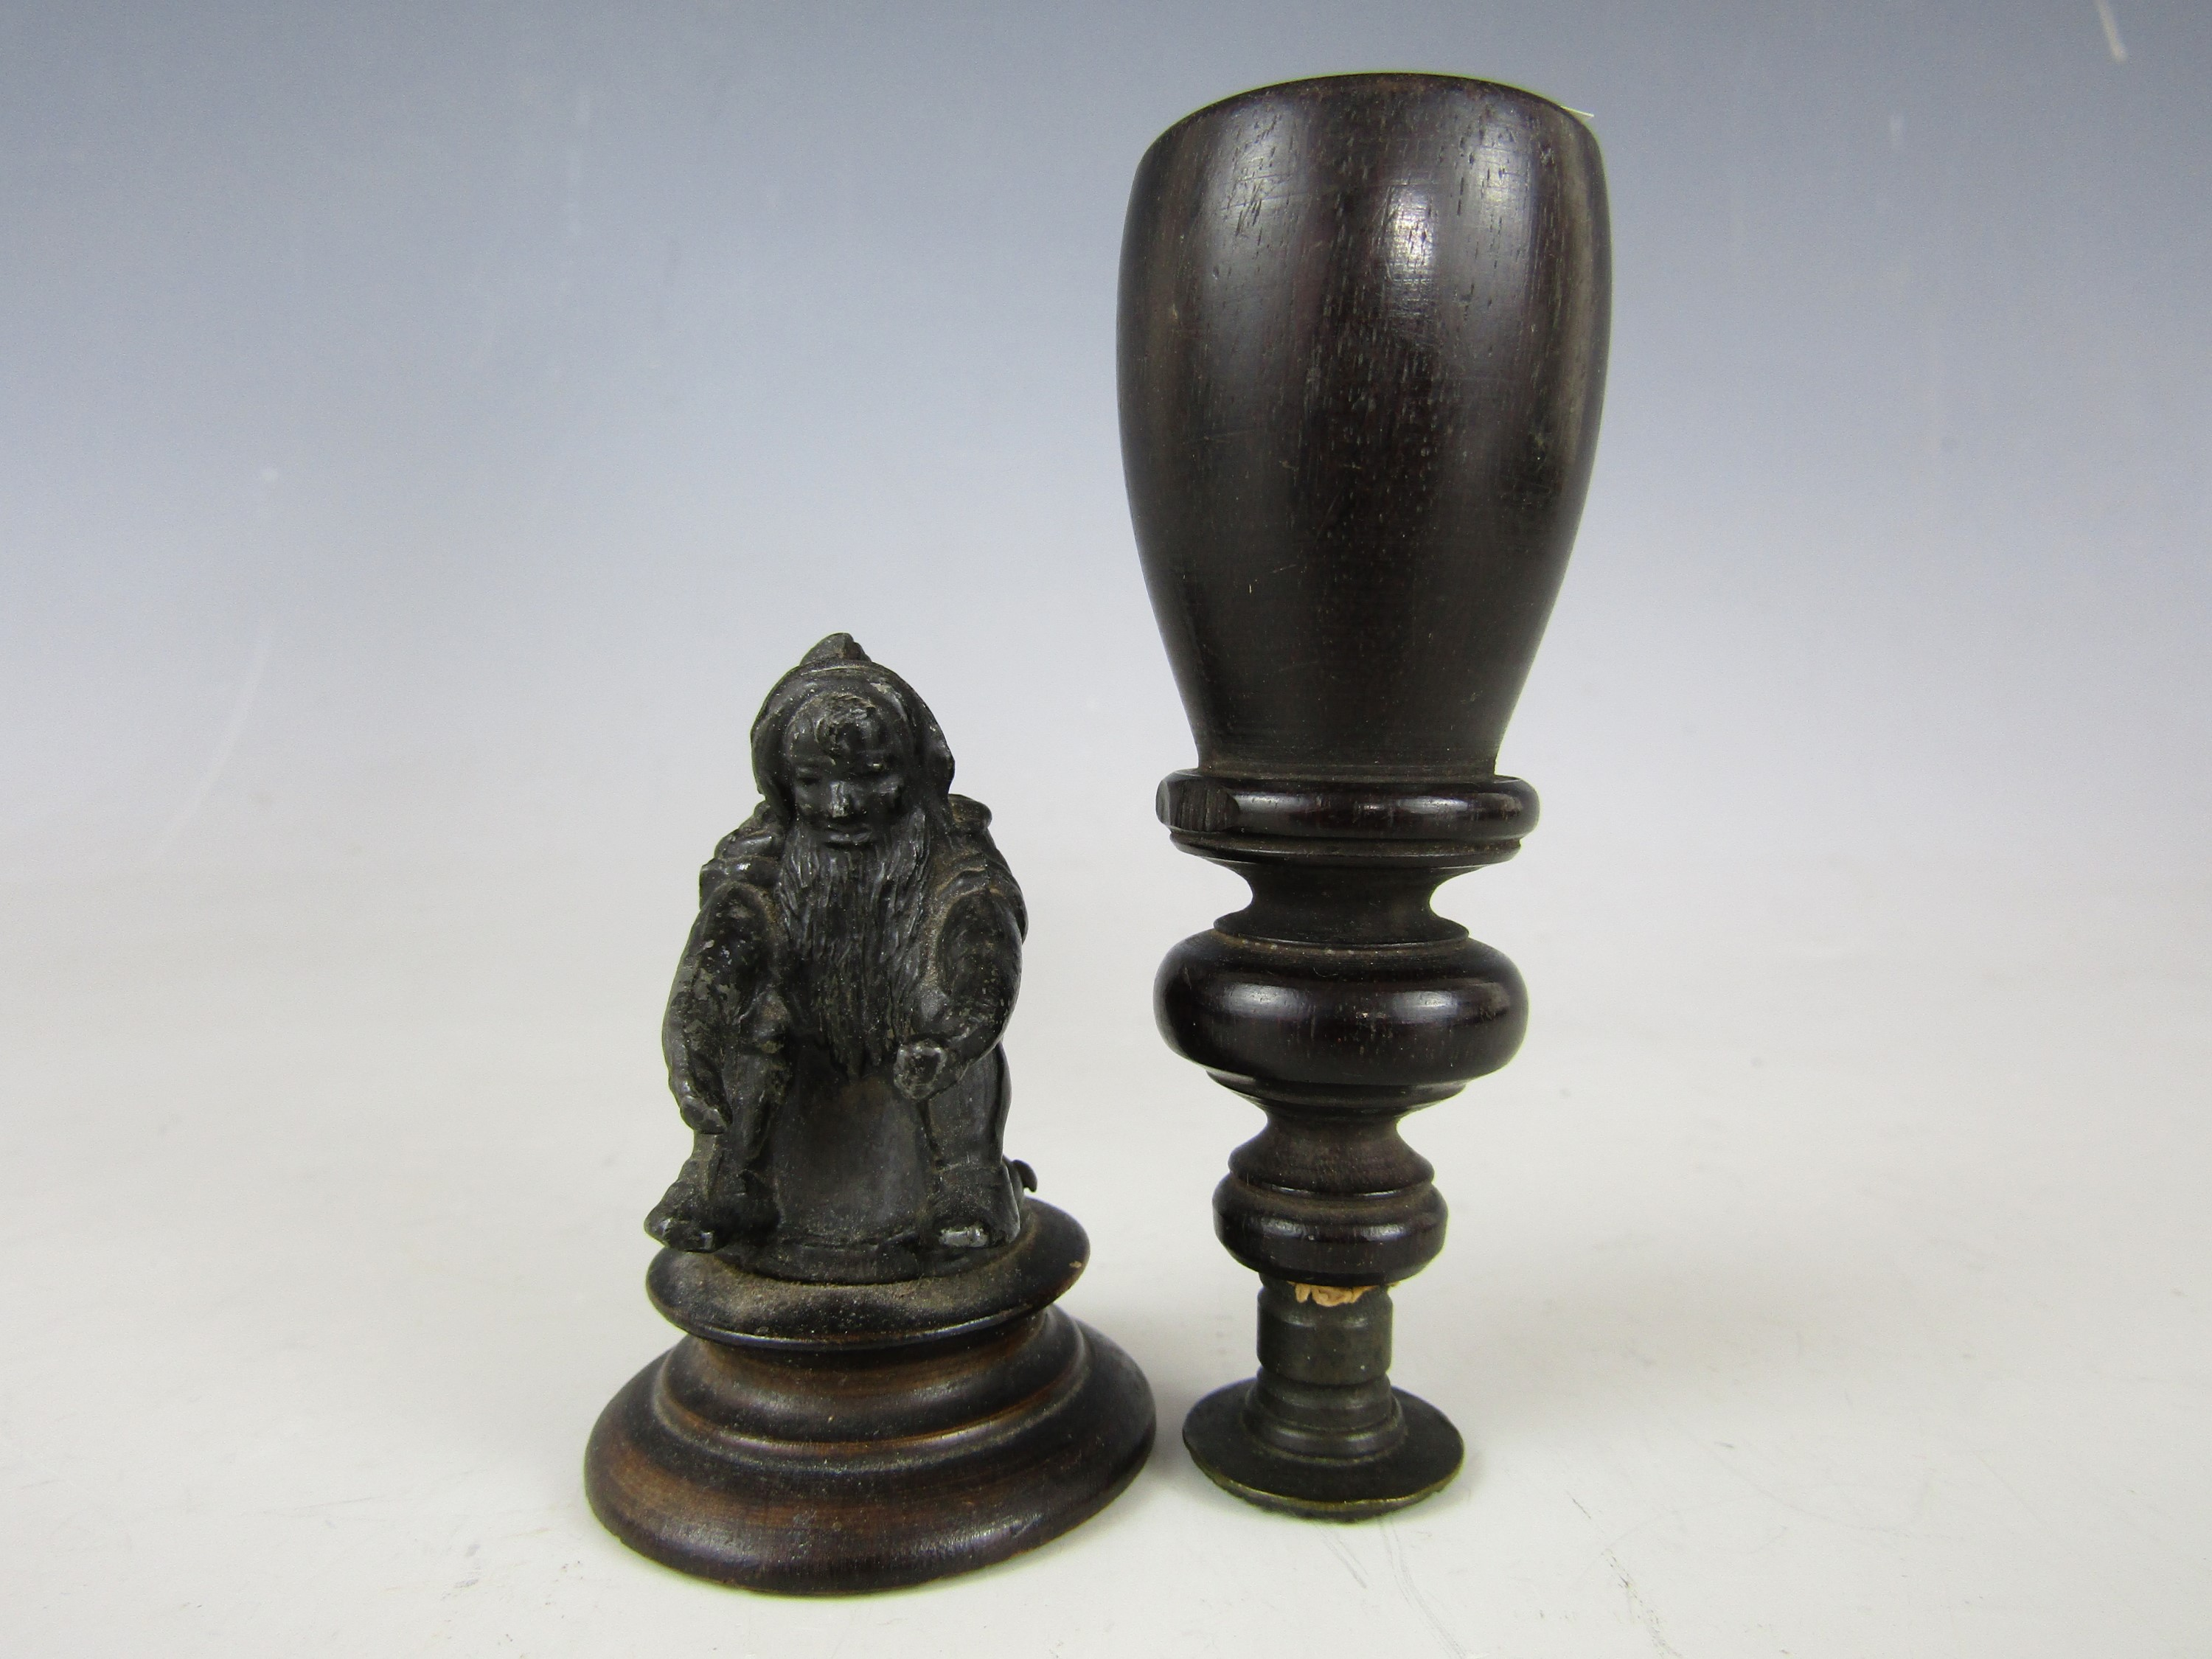 Lot 23 - A 19th Century desk seal with turned ebony handle and chequered matrix, together with a small